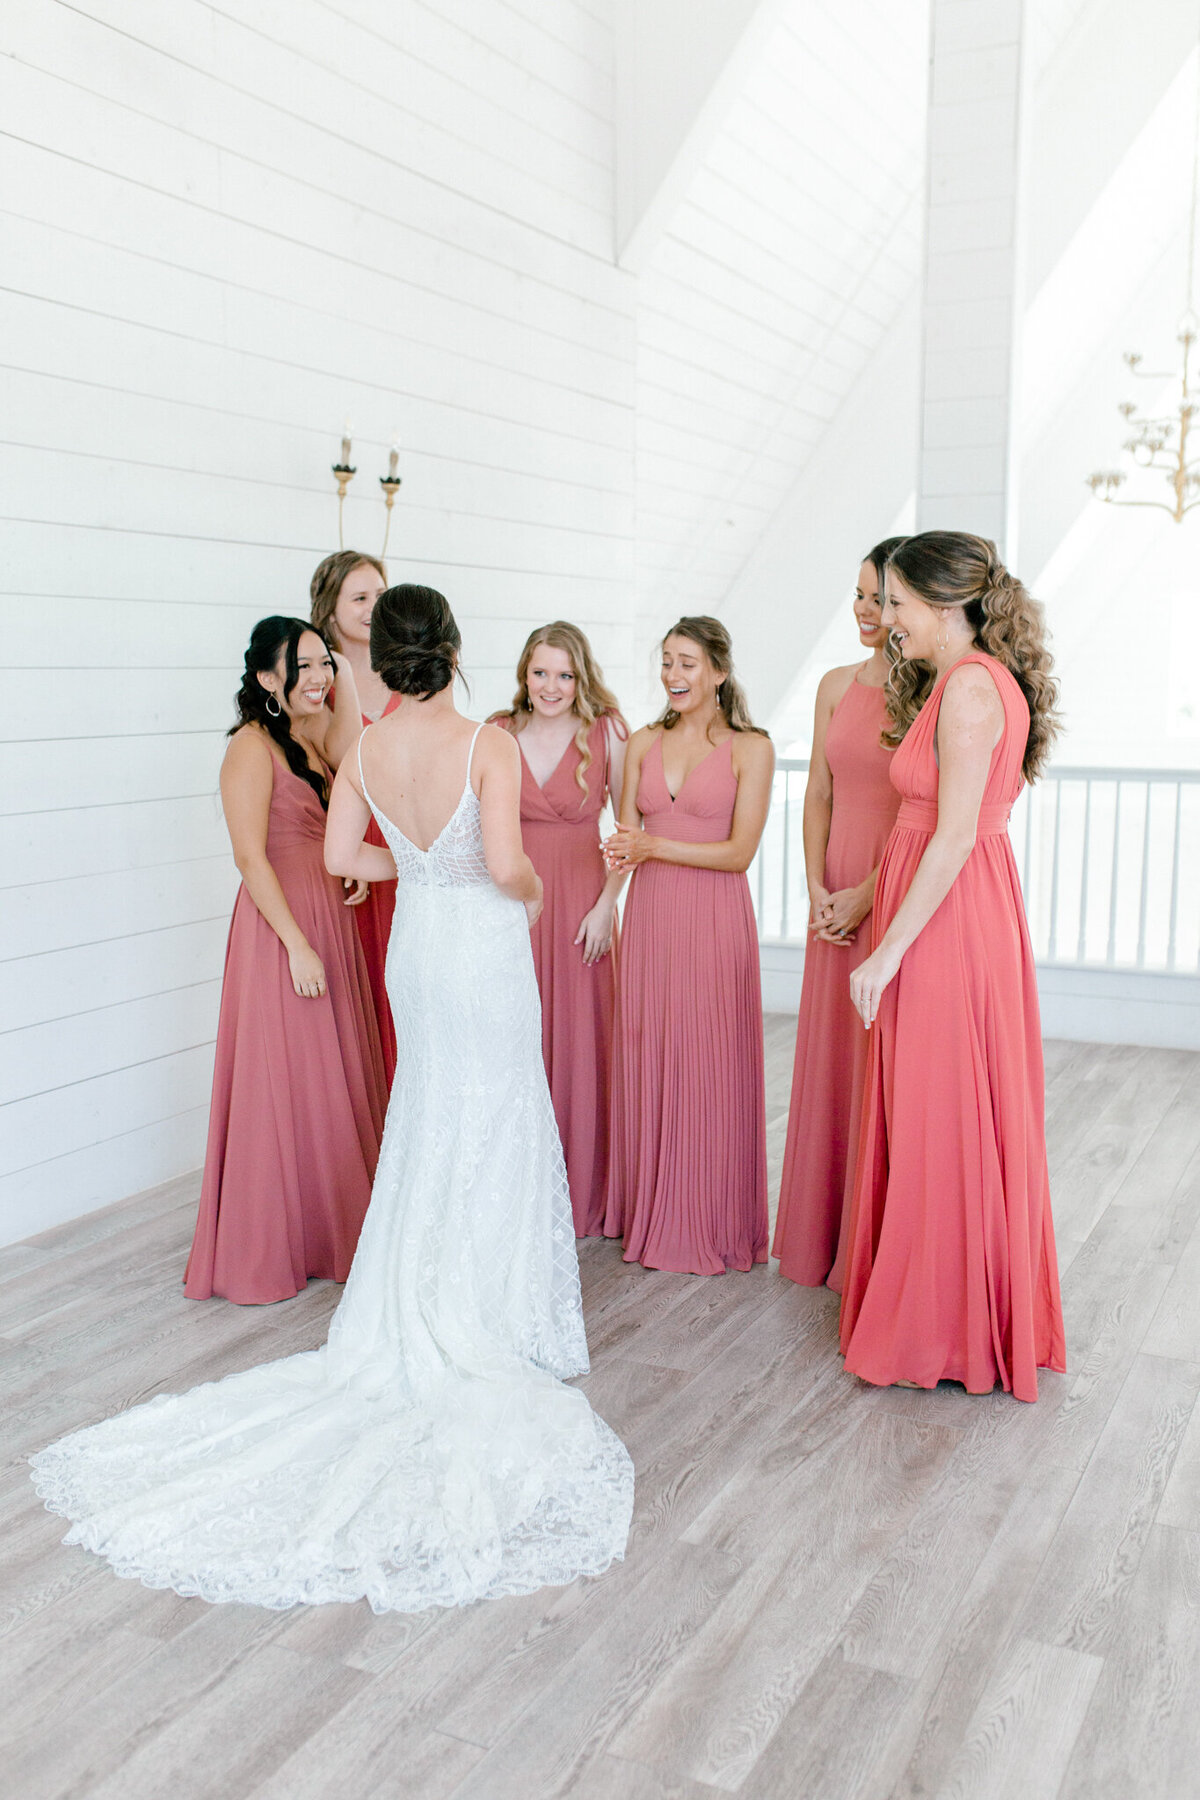 Anna & Billy's Wedding at The Nest at Ruth Farms | Dallas Wedding Photographer | Sami Kathryn Photography-47